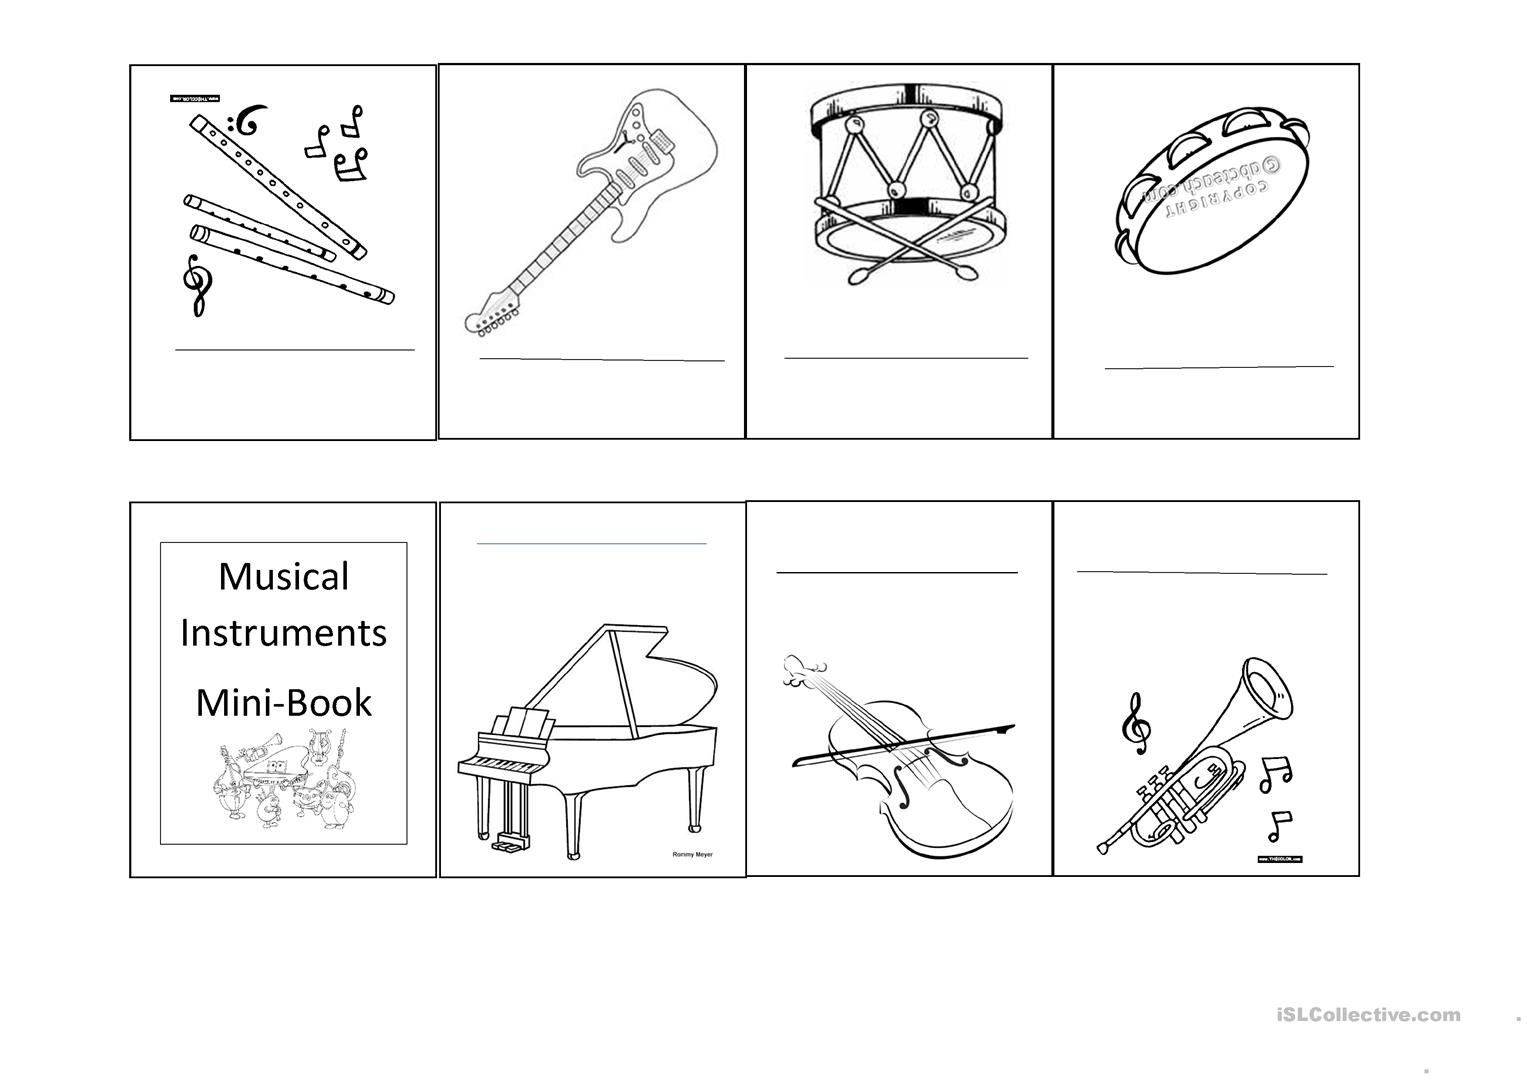 hight resolution of Musical Instruments Vocabulary Worksheets   Printable Worksheets and  Activities for Teachers